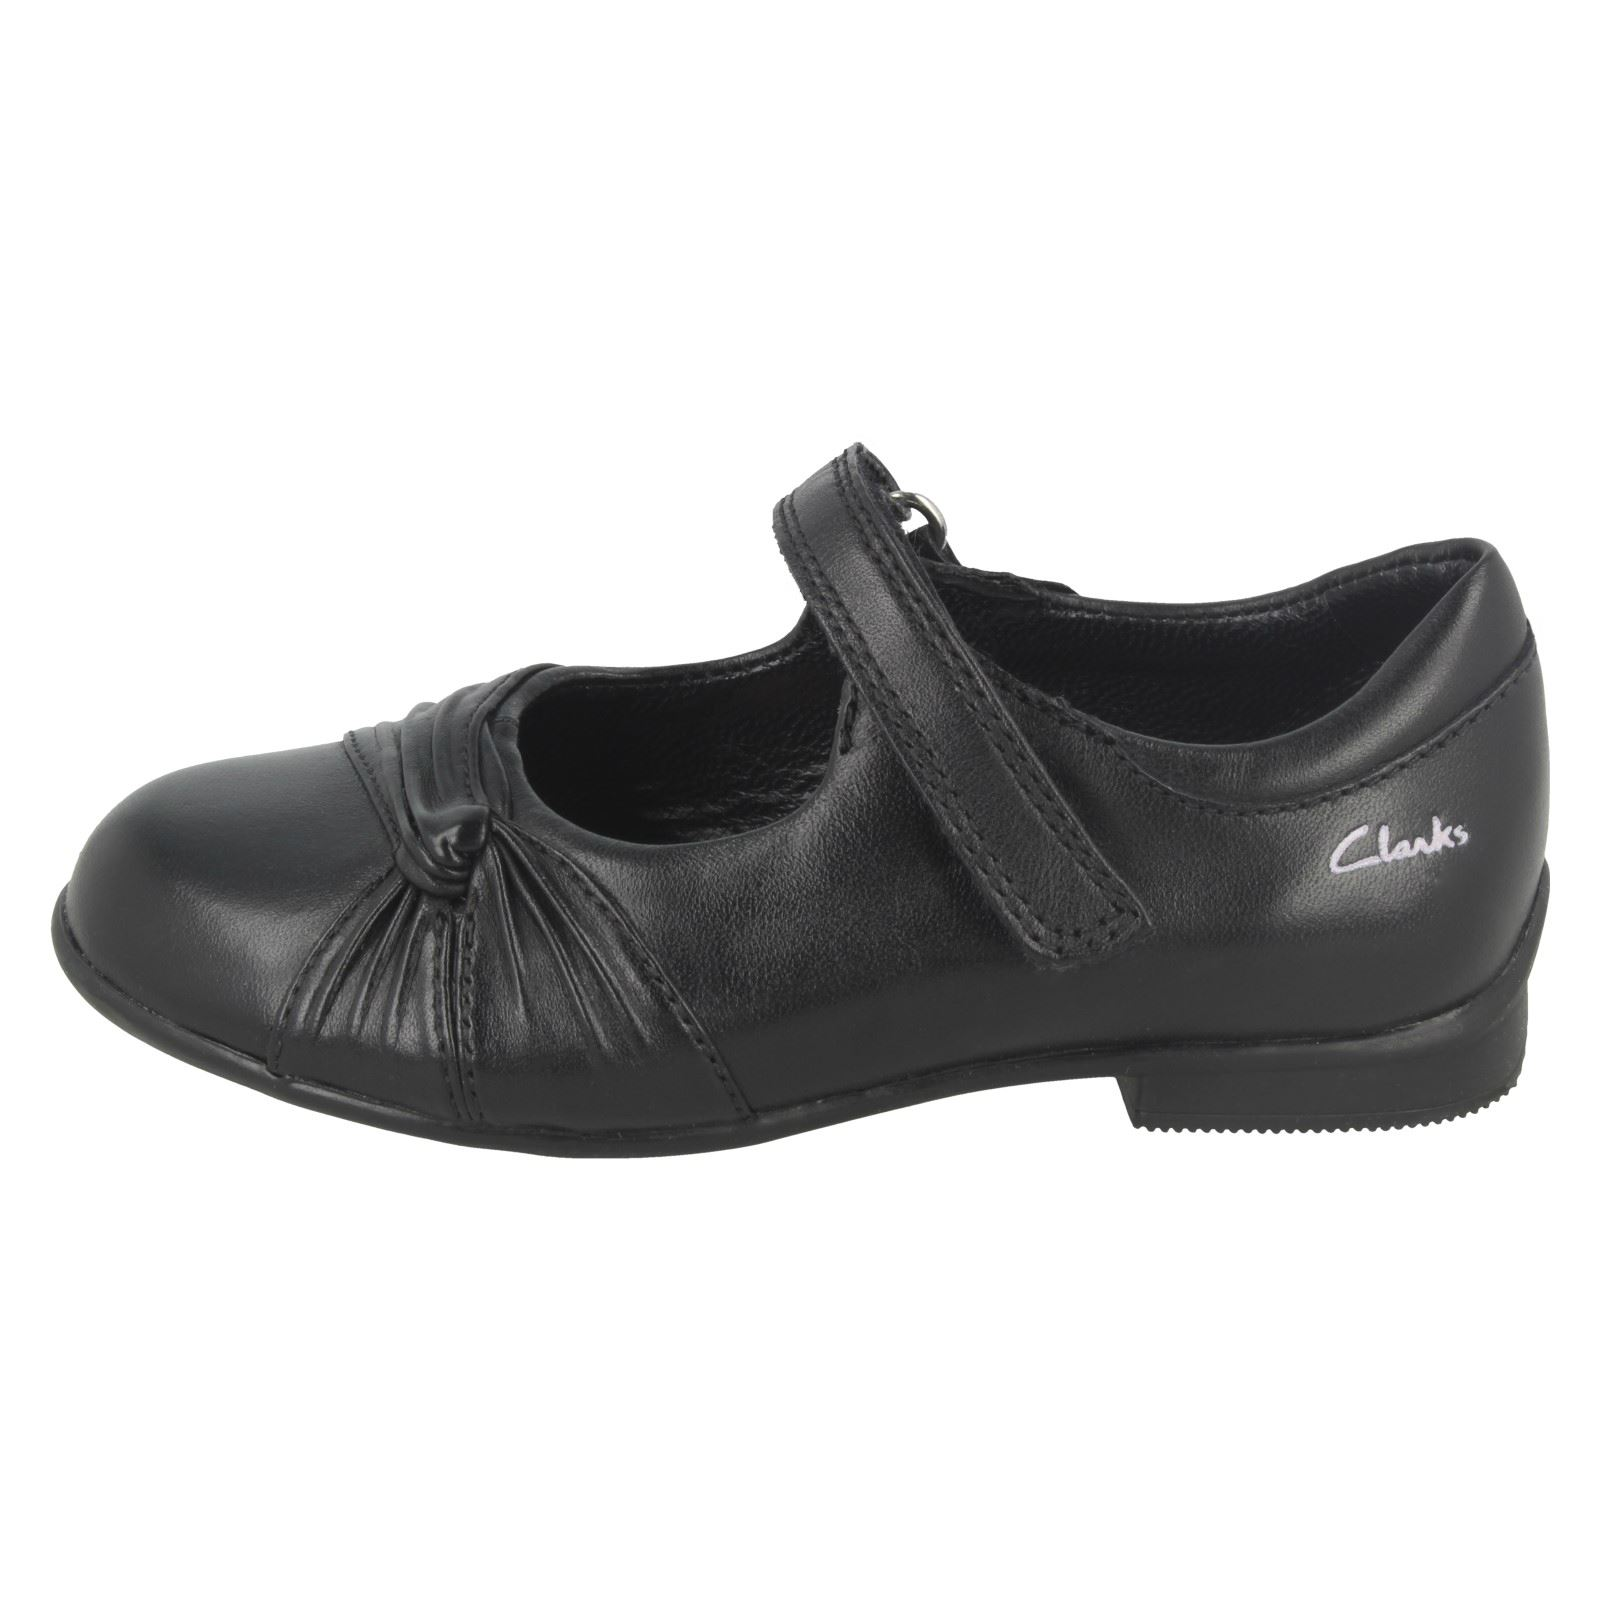 Girls Clarks Shoes 'Bethan Pre' The Style ~ K